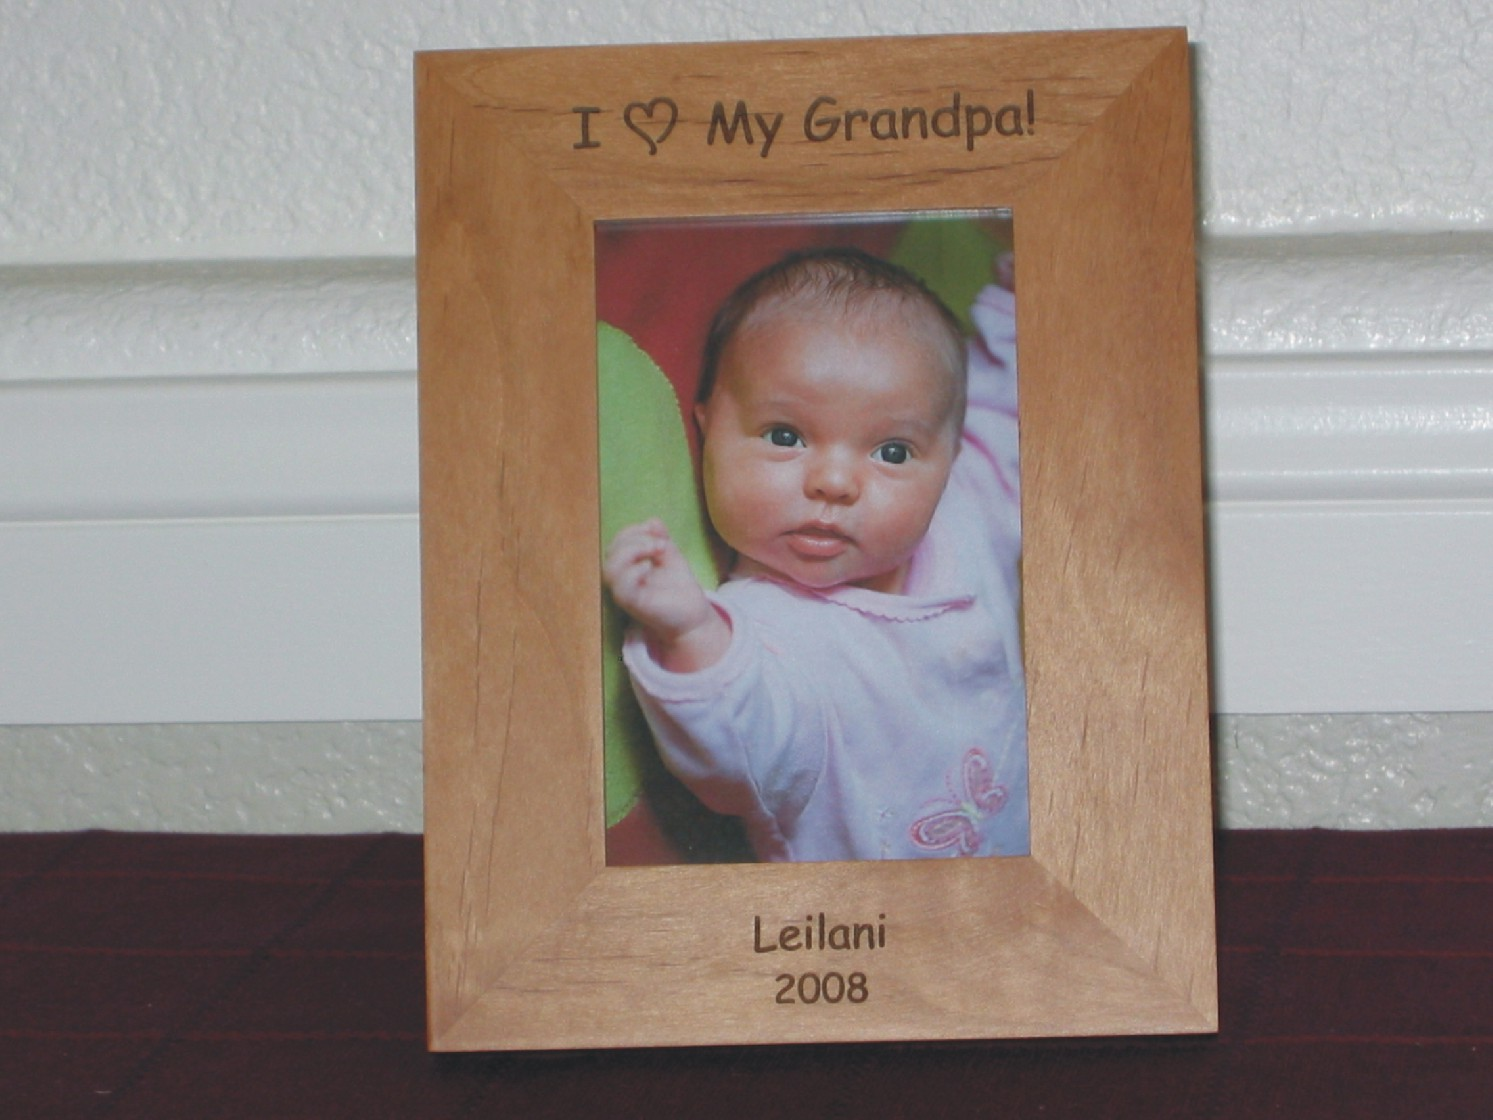 I Love You Picture Frames - Personalized I Love you Picture Frames